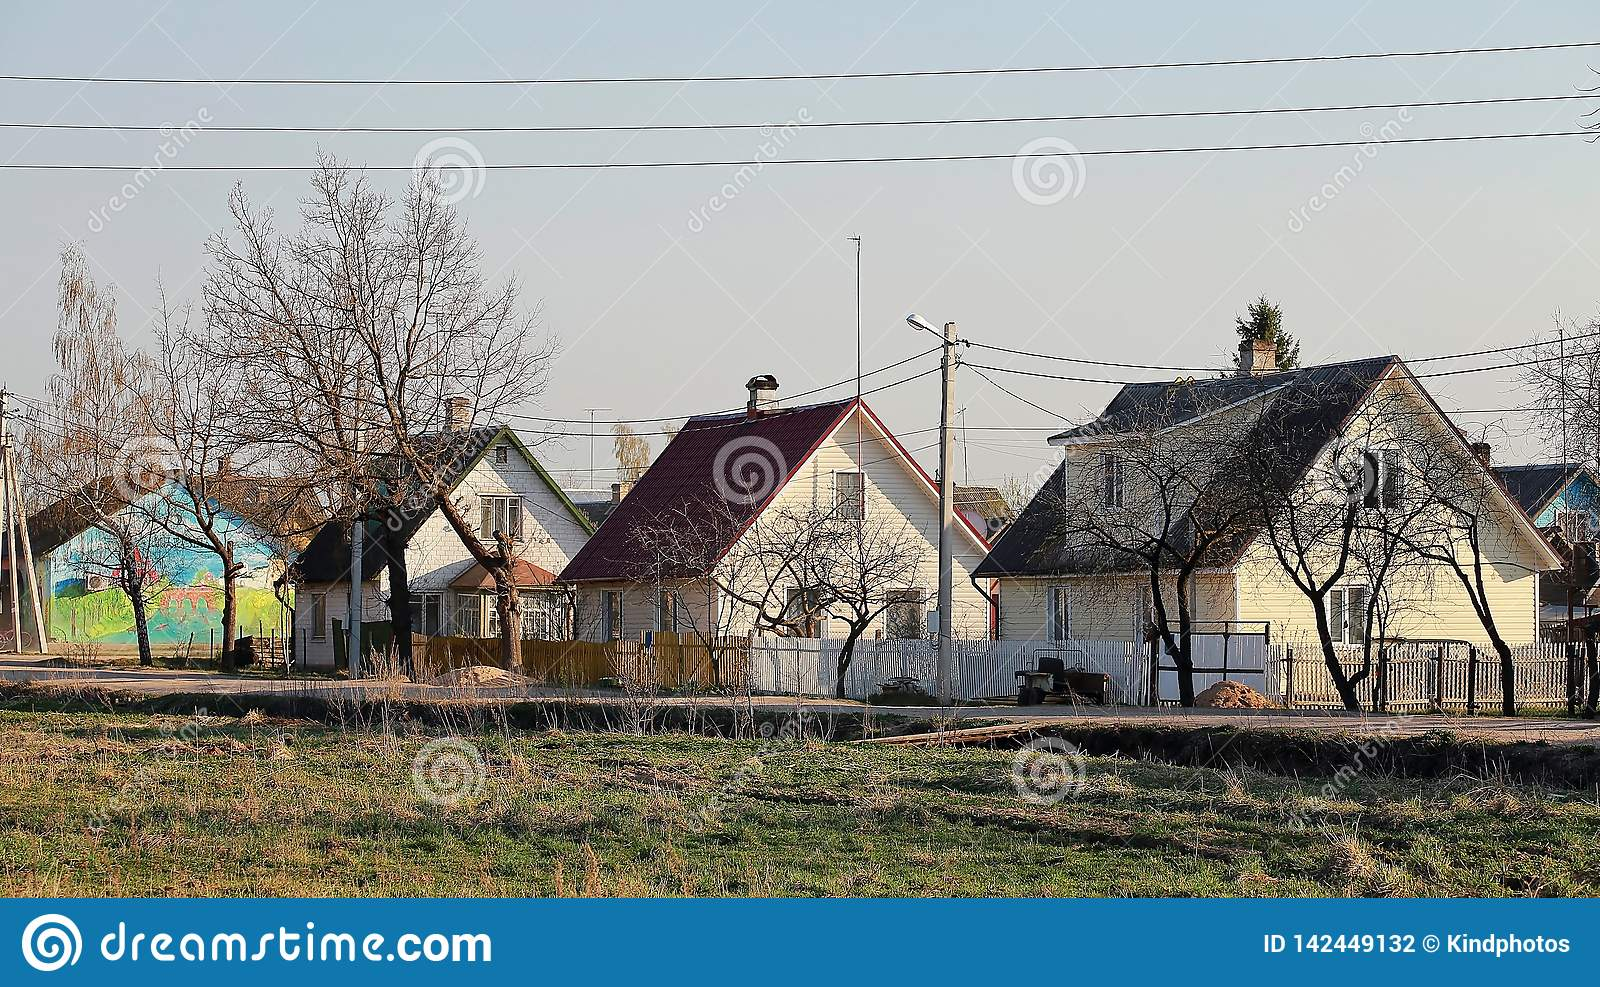 Houses in the town of Pechoriy, Pskov region